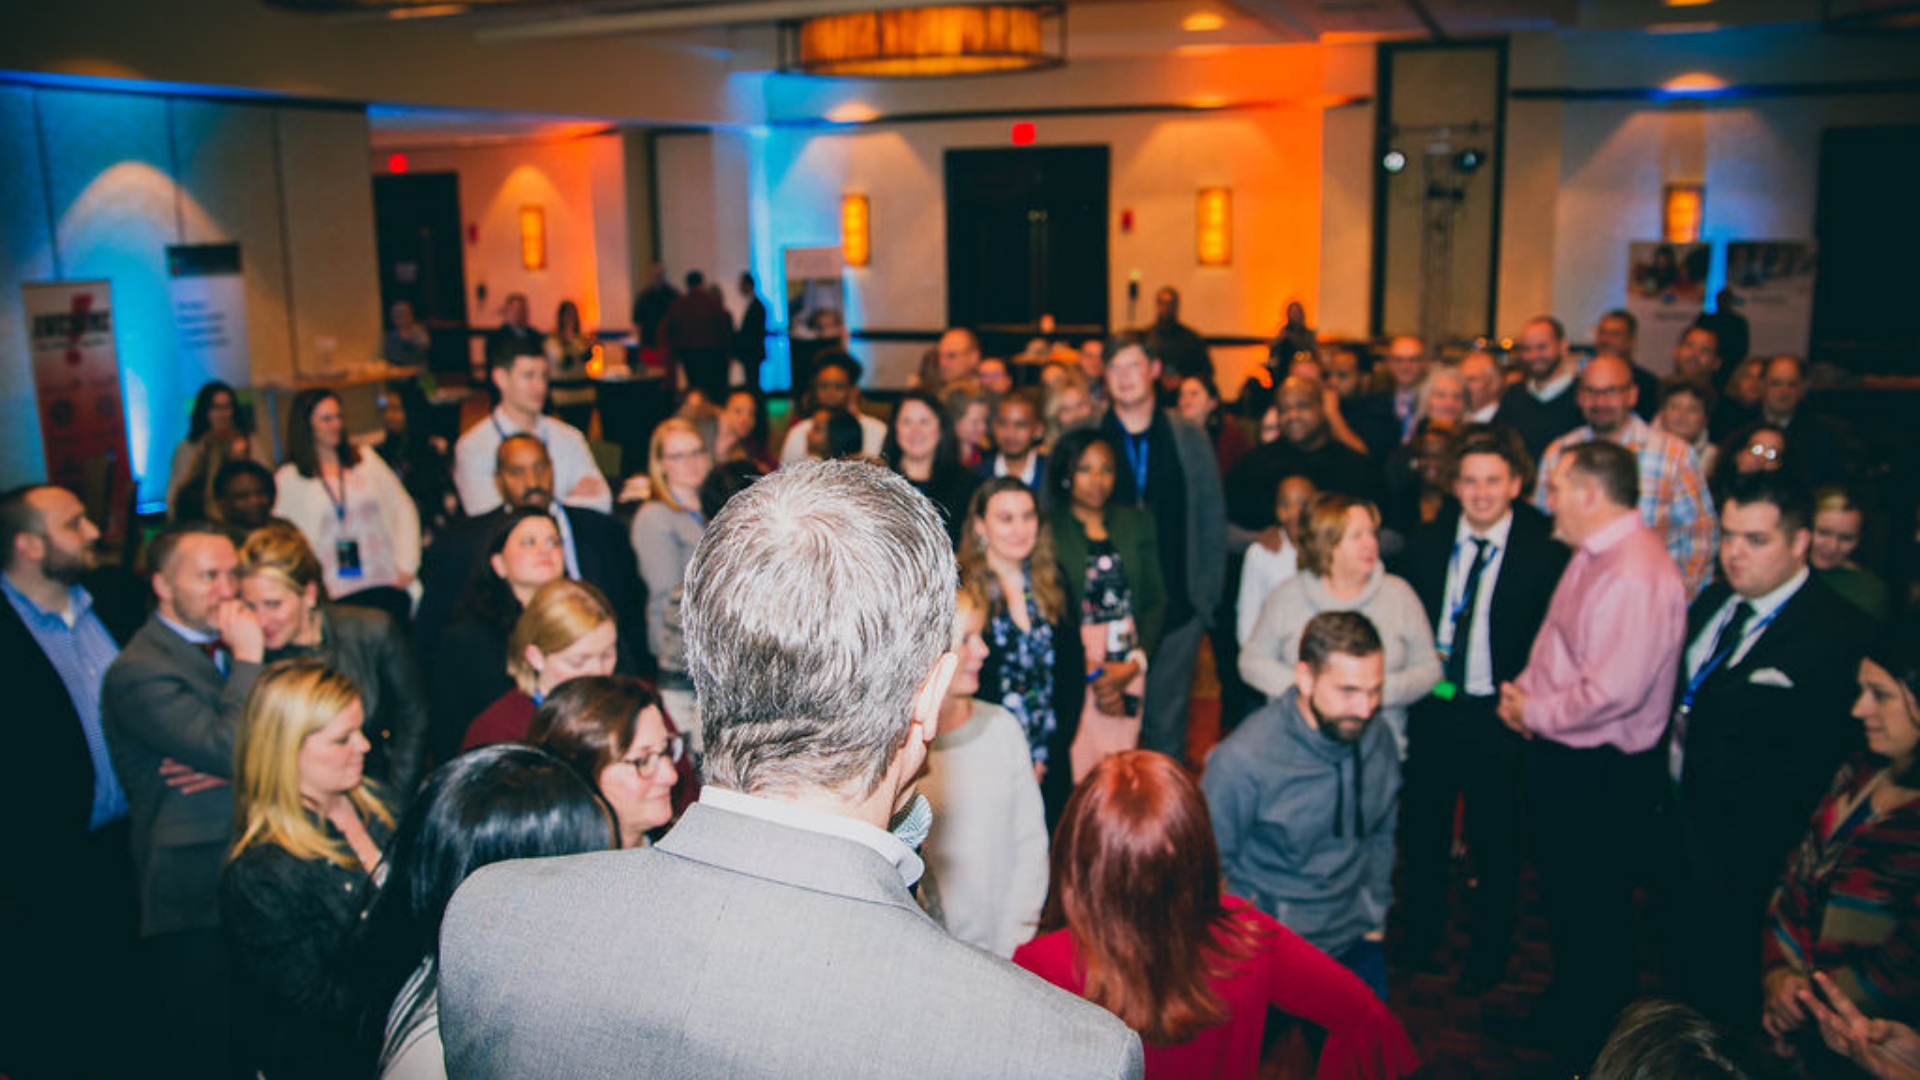 A photo of MAPSA President, Dan Quisenberry, facing away from the camera and towards a small crowd of charter school stakeholders who are attending the 2019 MAPSA Social.